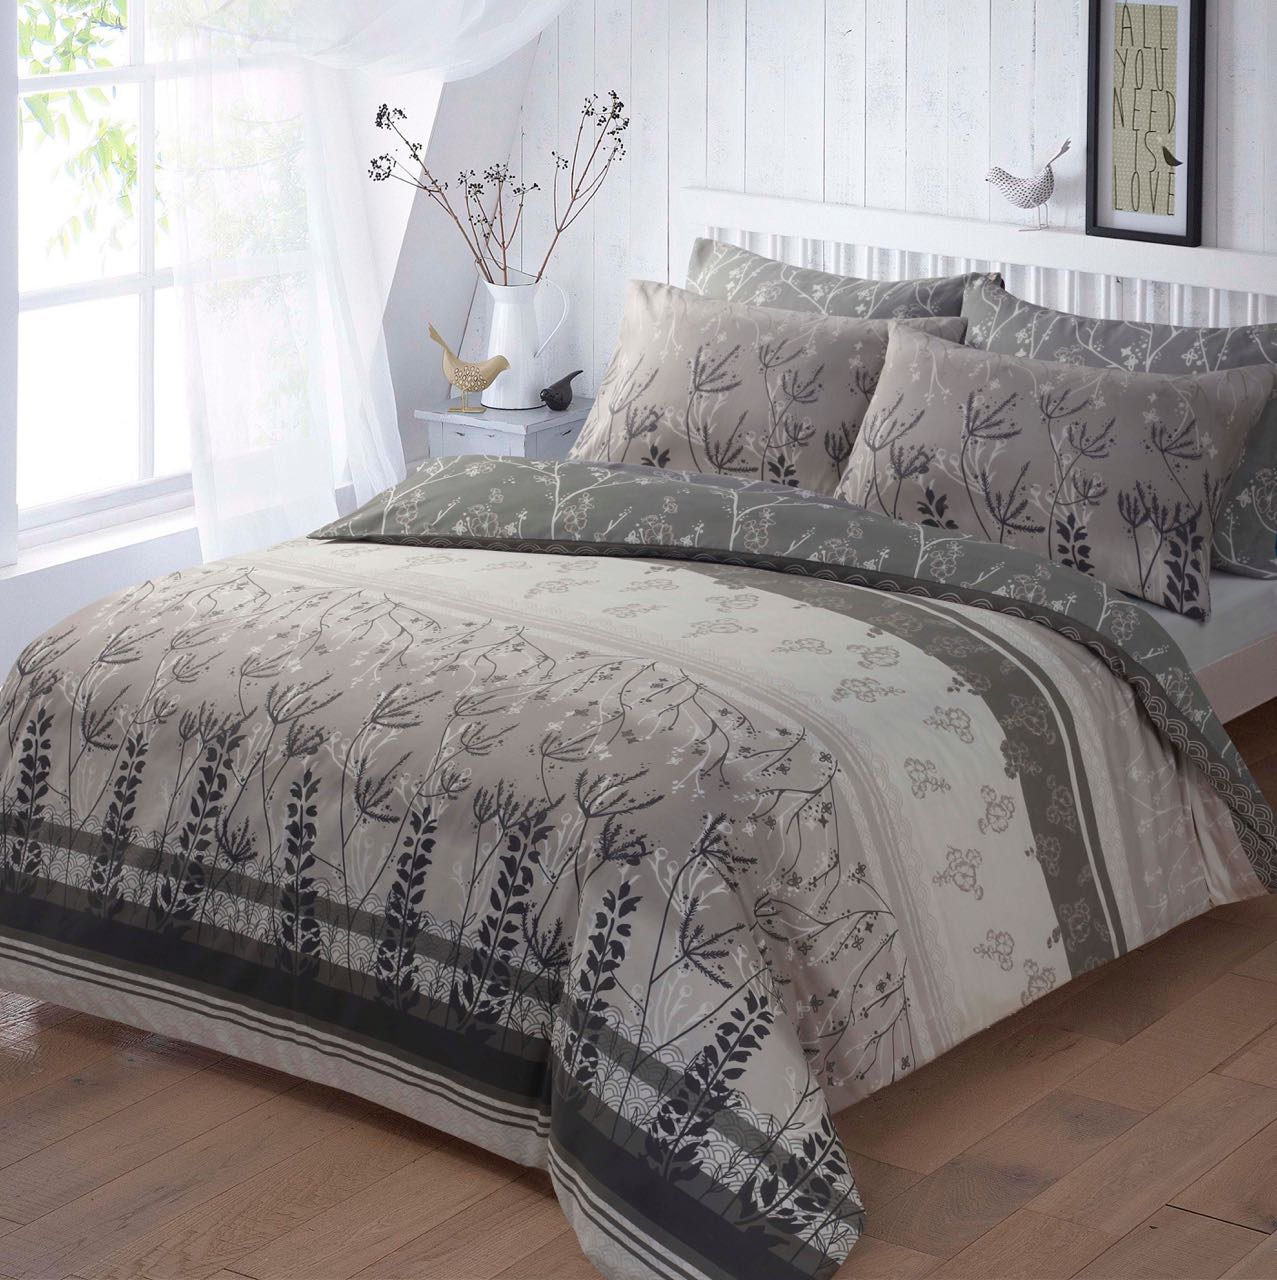 Garden Print Duvet Set - Double.